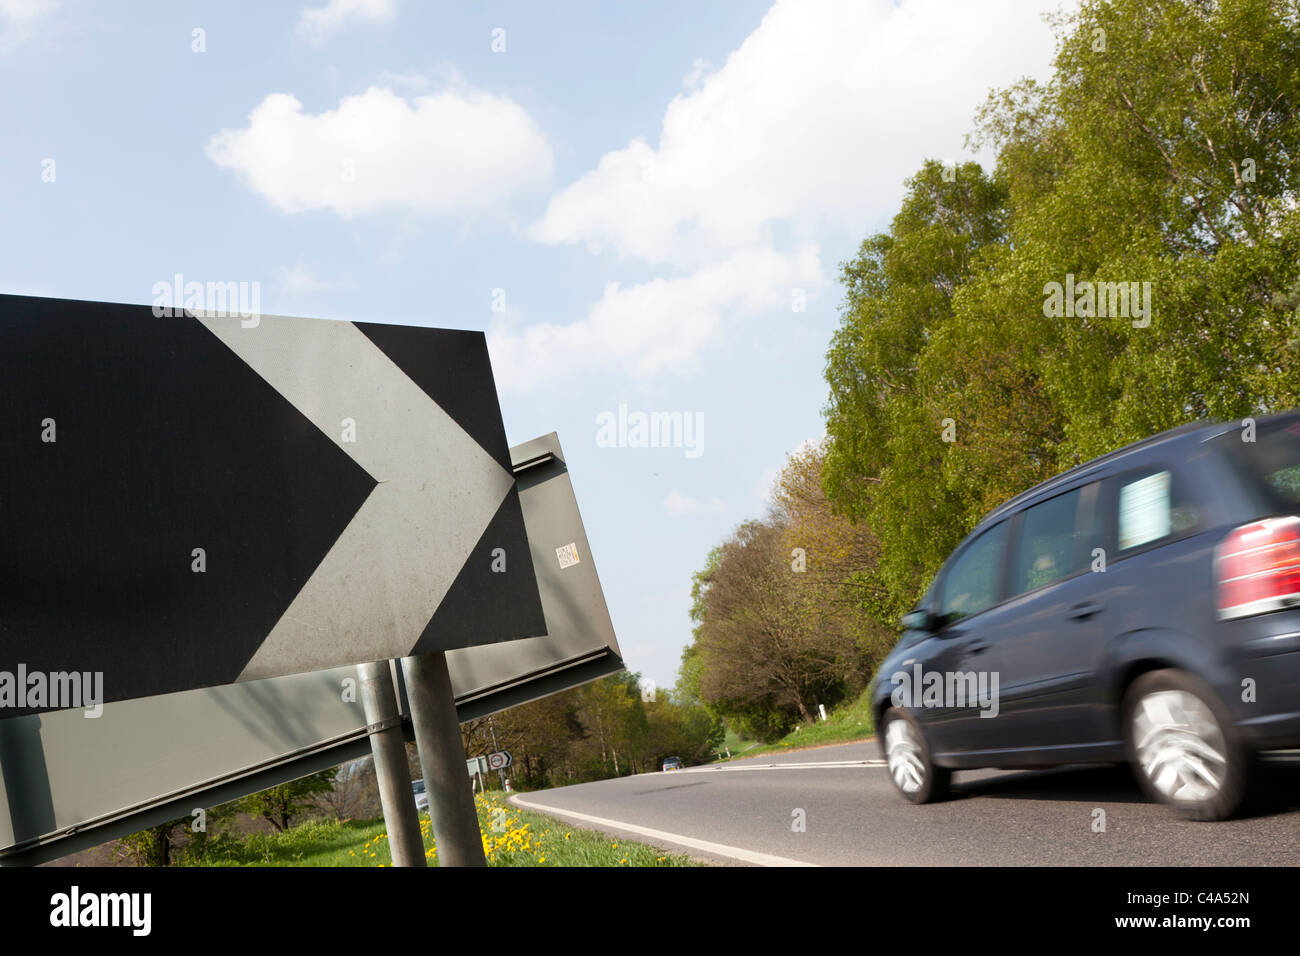 road warning sign 'Sharp deviation of route' - Stock Image